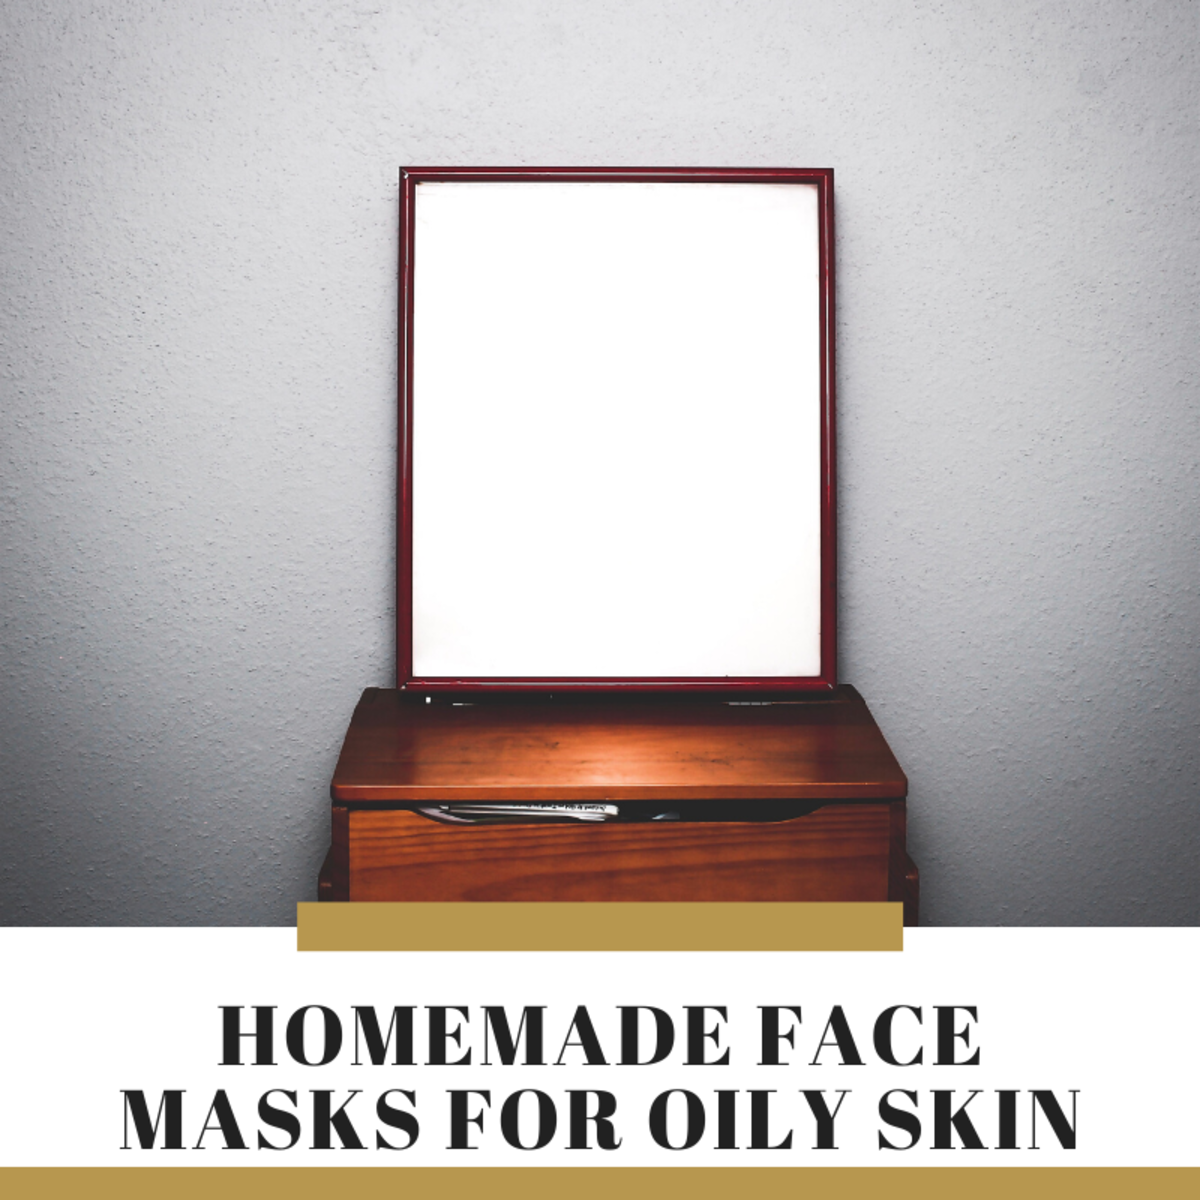 8 Best Homemade Face Masks for Oily Skin